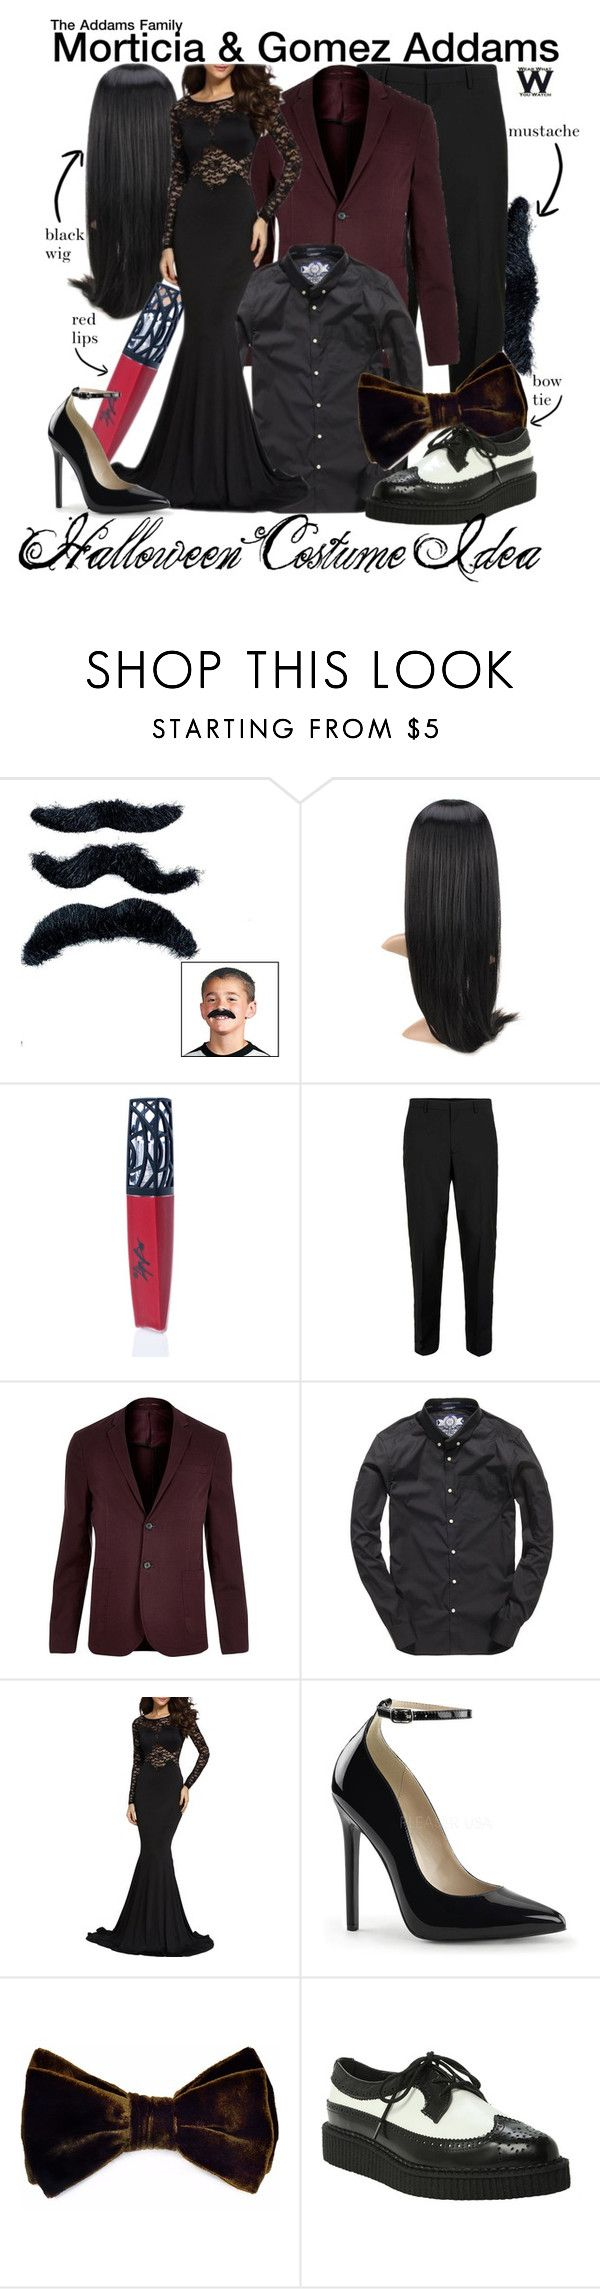 """""""The Addams Family"""" by wearwhatyouwatch ❤ liked on Polyvore featuring The Lip Bar, Topman, River Island, Superdry, Louise & Zaid, T.U.K., wearwhatyouwatch, film and halloweencostume"""